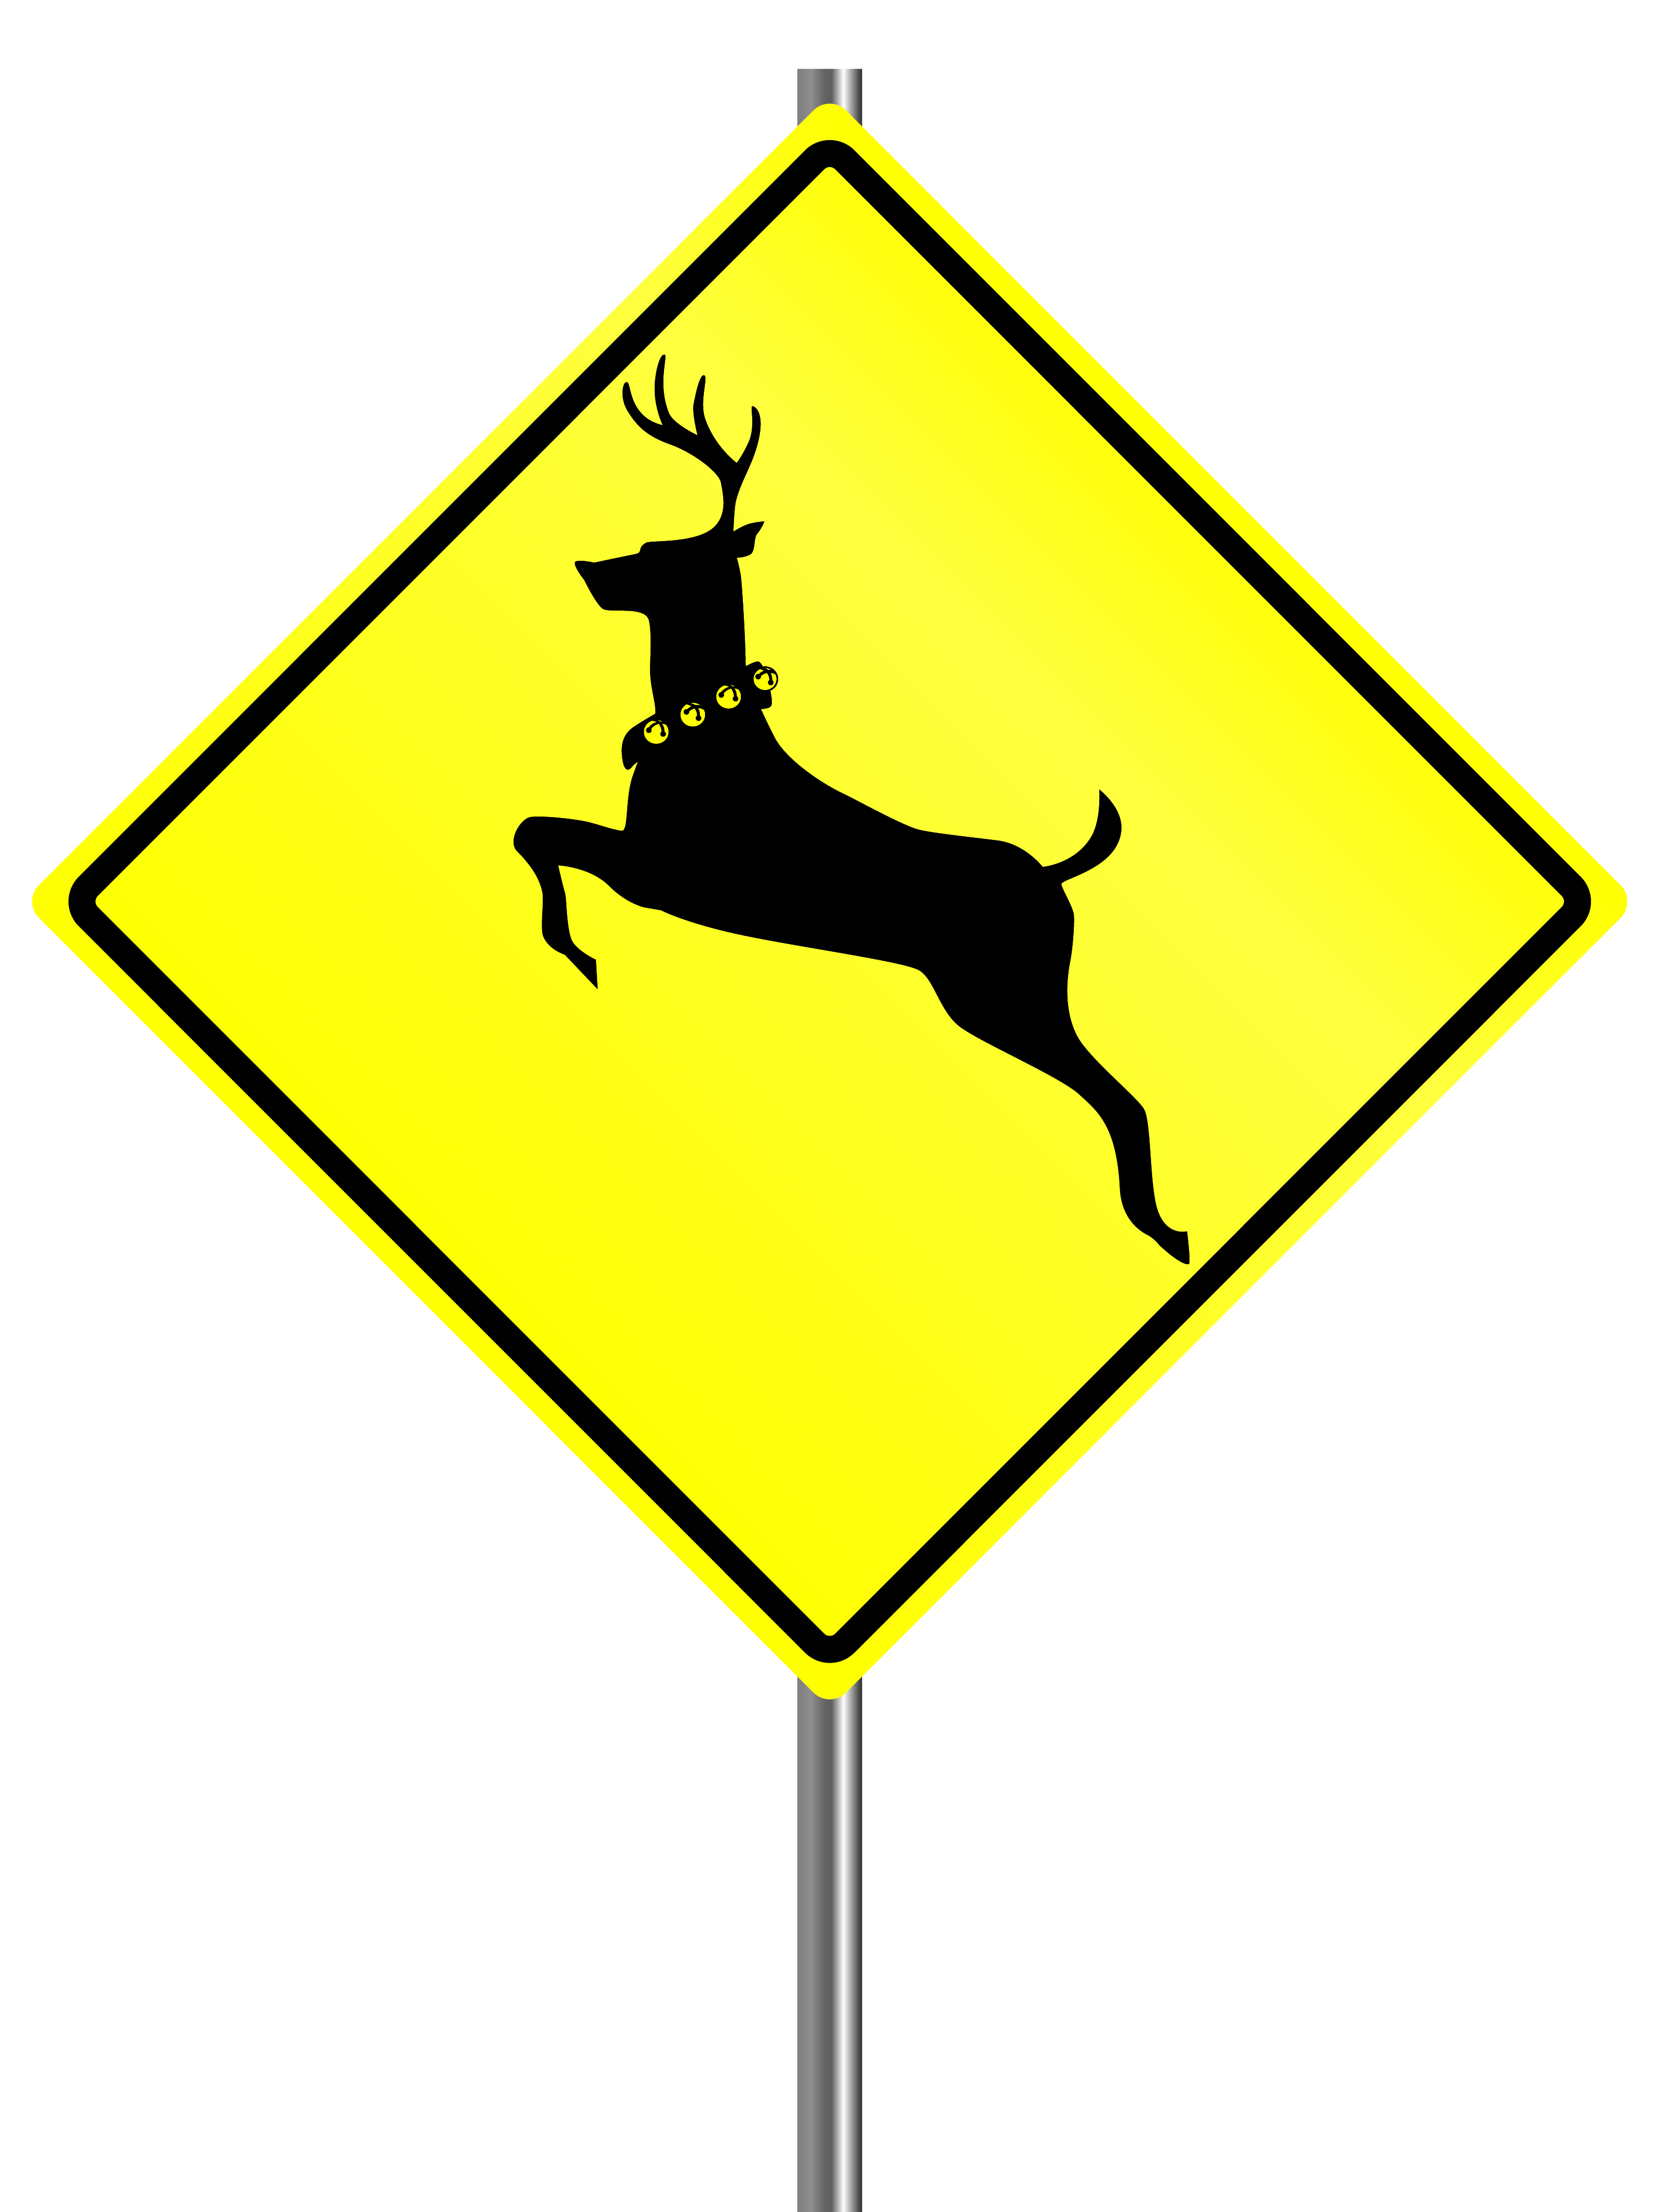 Dear runners: watch the skies... for flying deer!